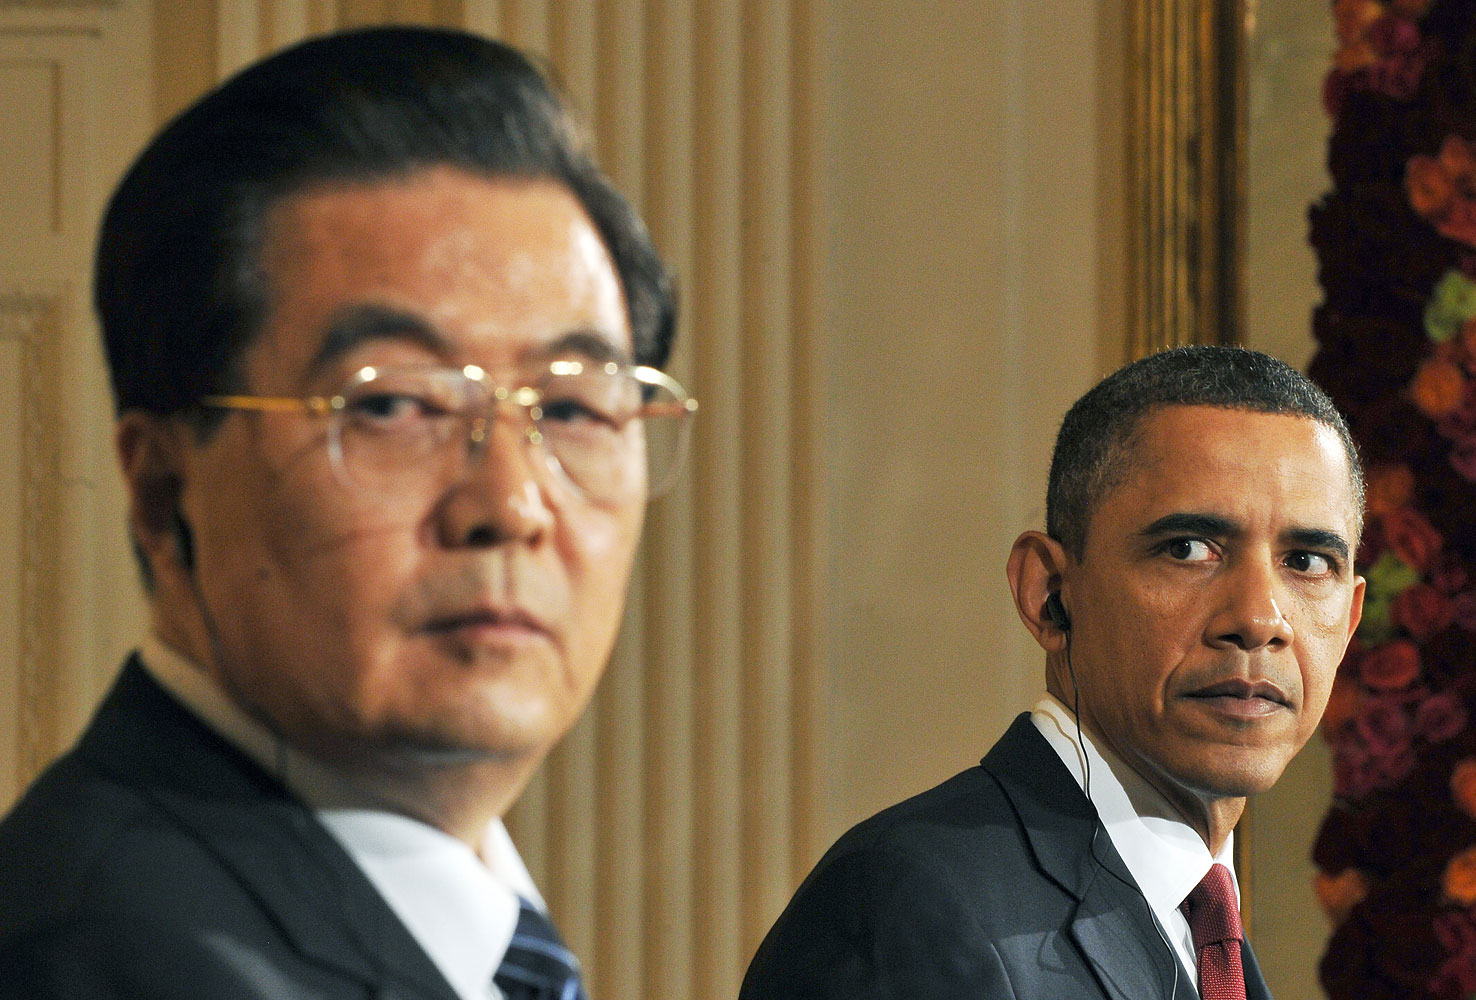 US President Barack Obama and his Chinese counterpart Hu Jintao hold a press conference in the East Room at the White House in Washington, DC, on Jan. 19, 2011.